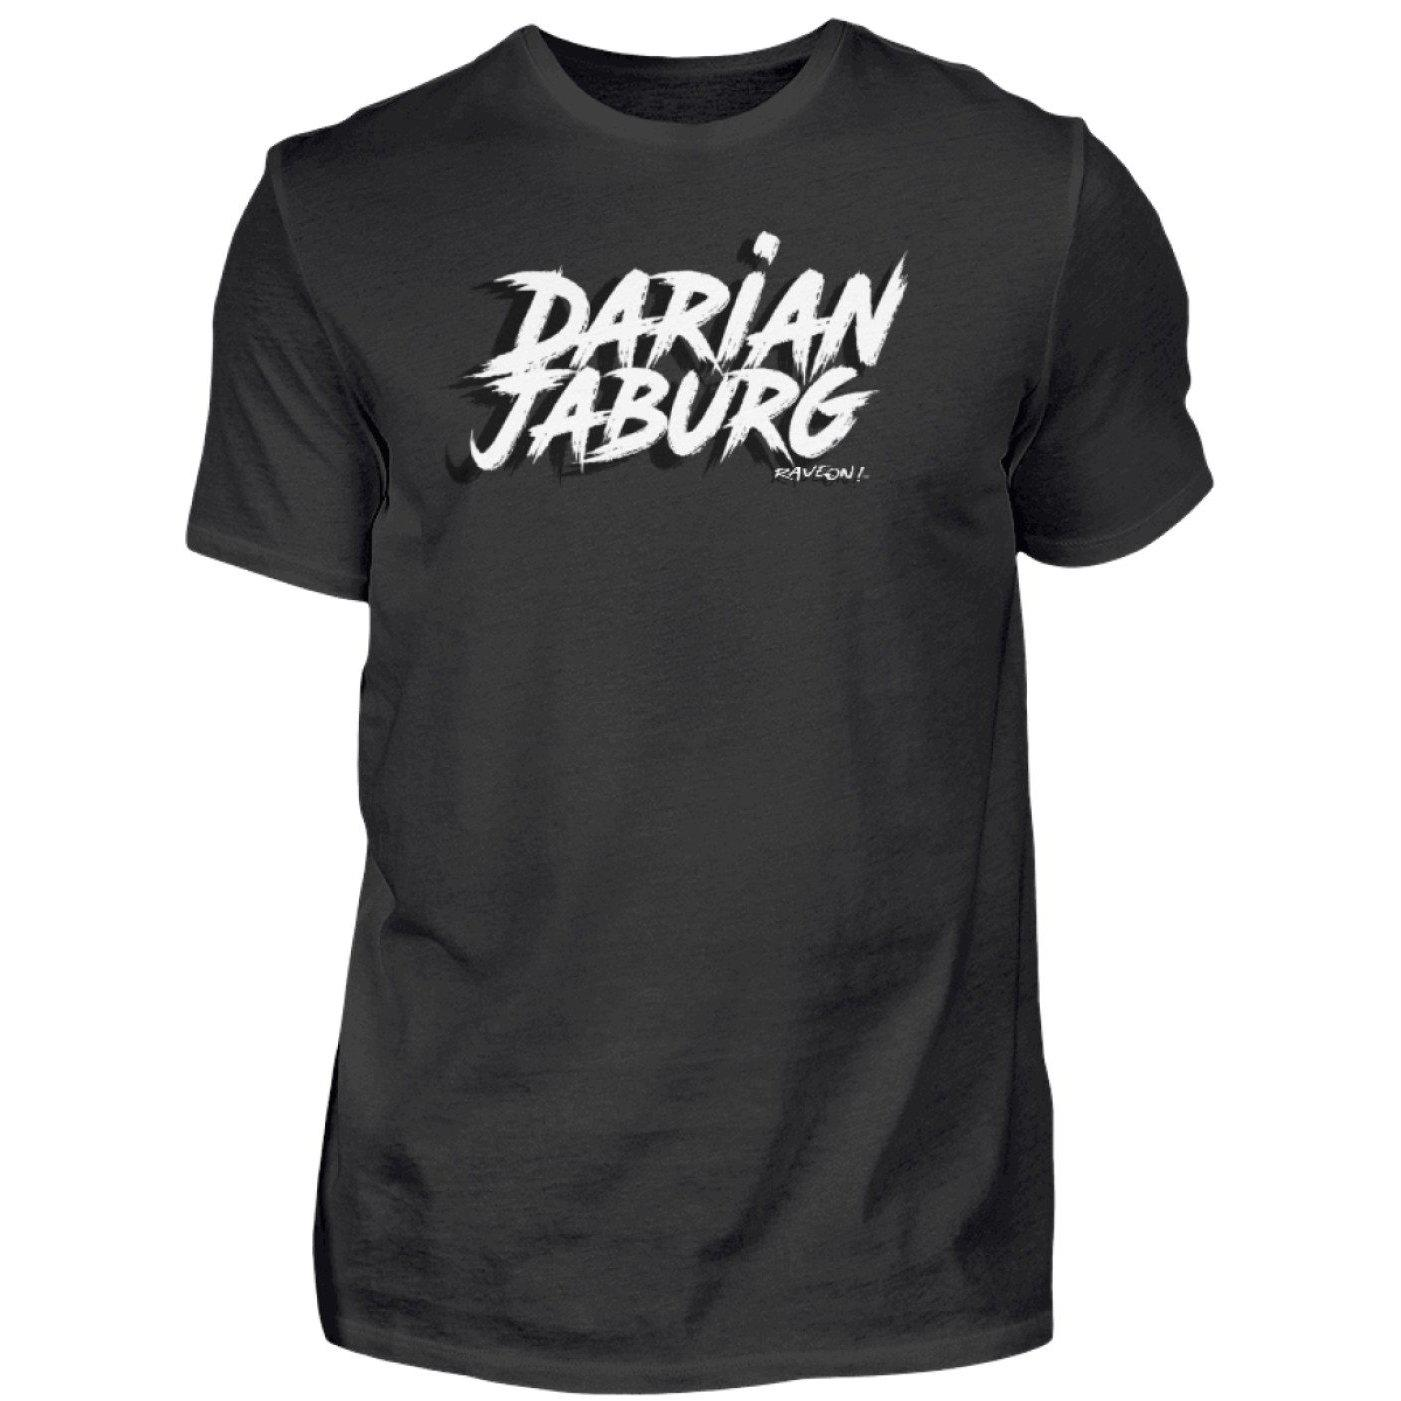 Darian Jaburg - BS Rec.Black - Rave On!® - Herren Premiumshirt Herren Premium Shirt Black / S - Rave On!® der Club & Techno Szene Shop für Coole Junge Mode Streetwear Style & Fashion Outfits + Sexy Festival 420 Stuff